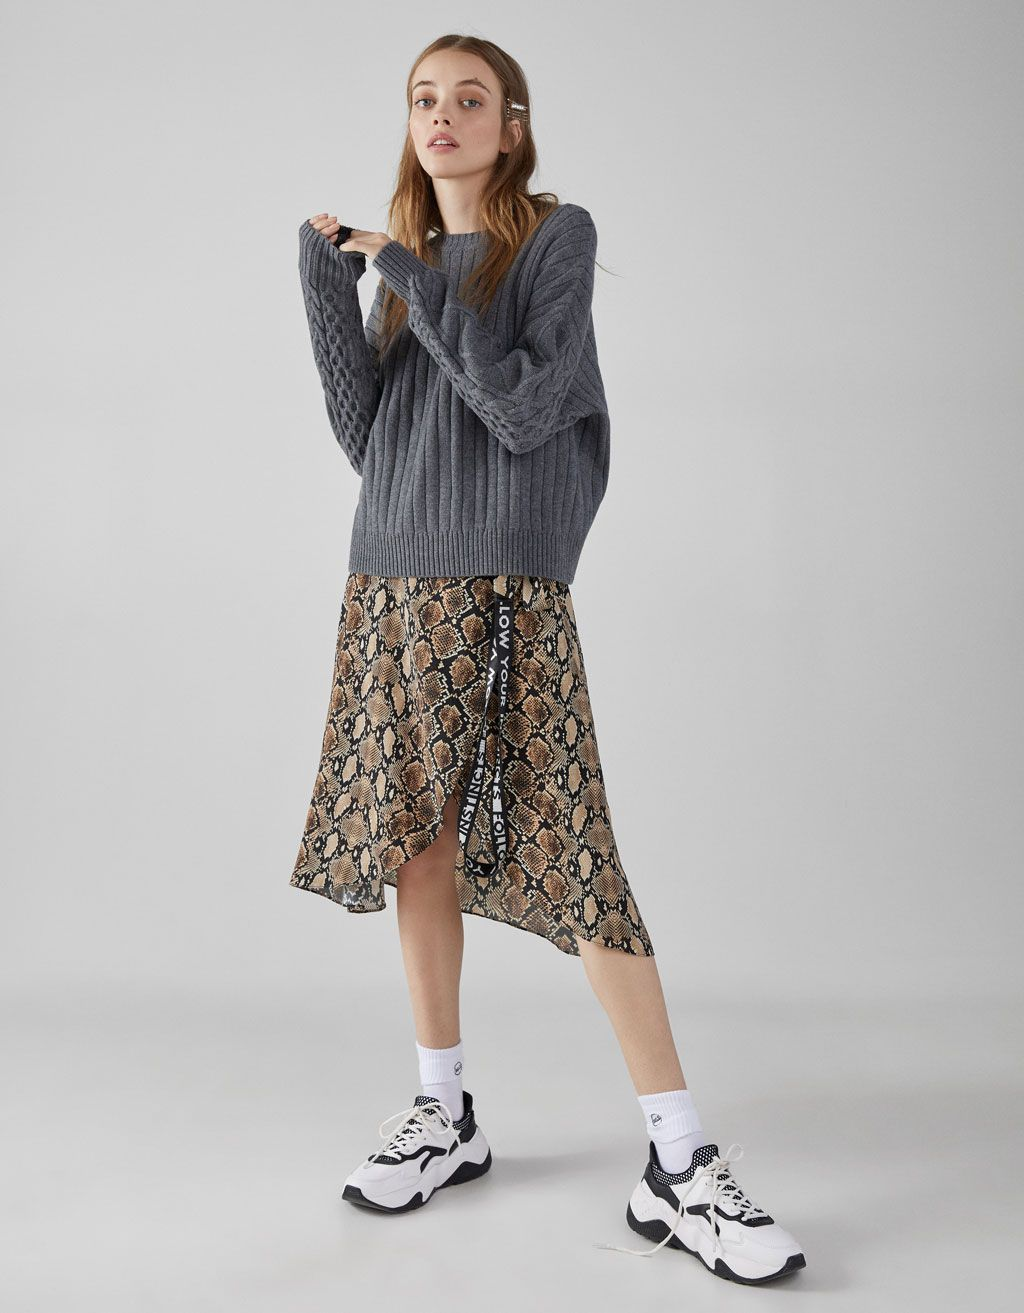 000618f8451b Cable-knit sweater - null - Bershka United States | Outfits ...